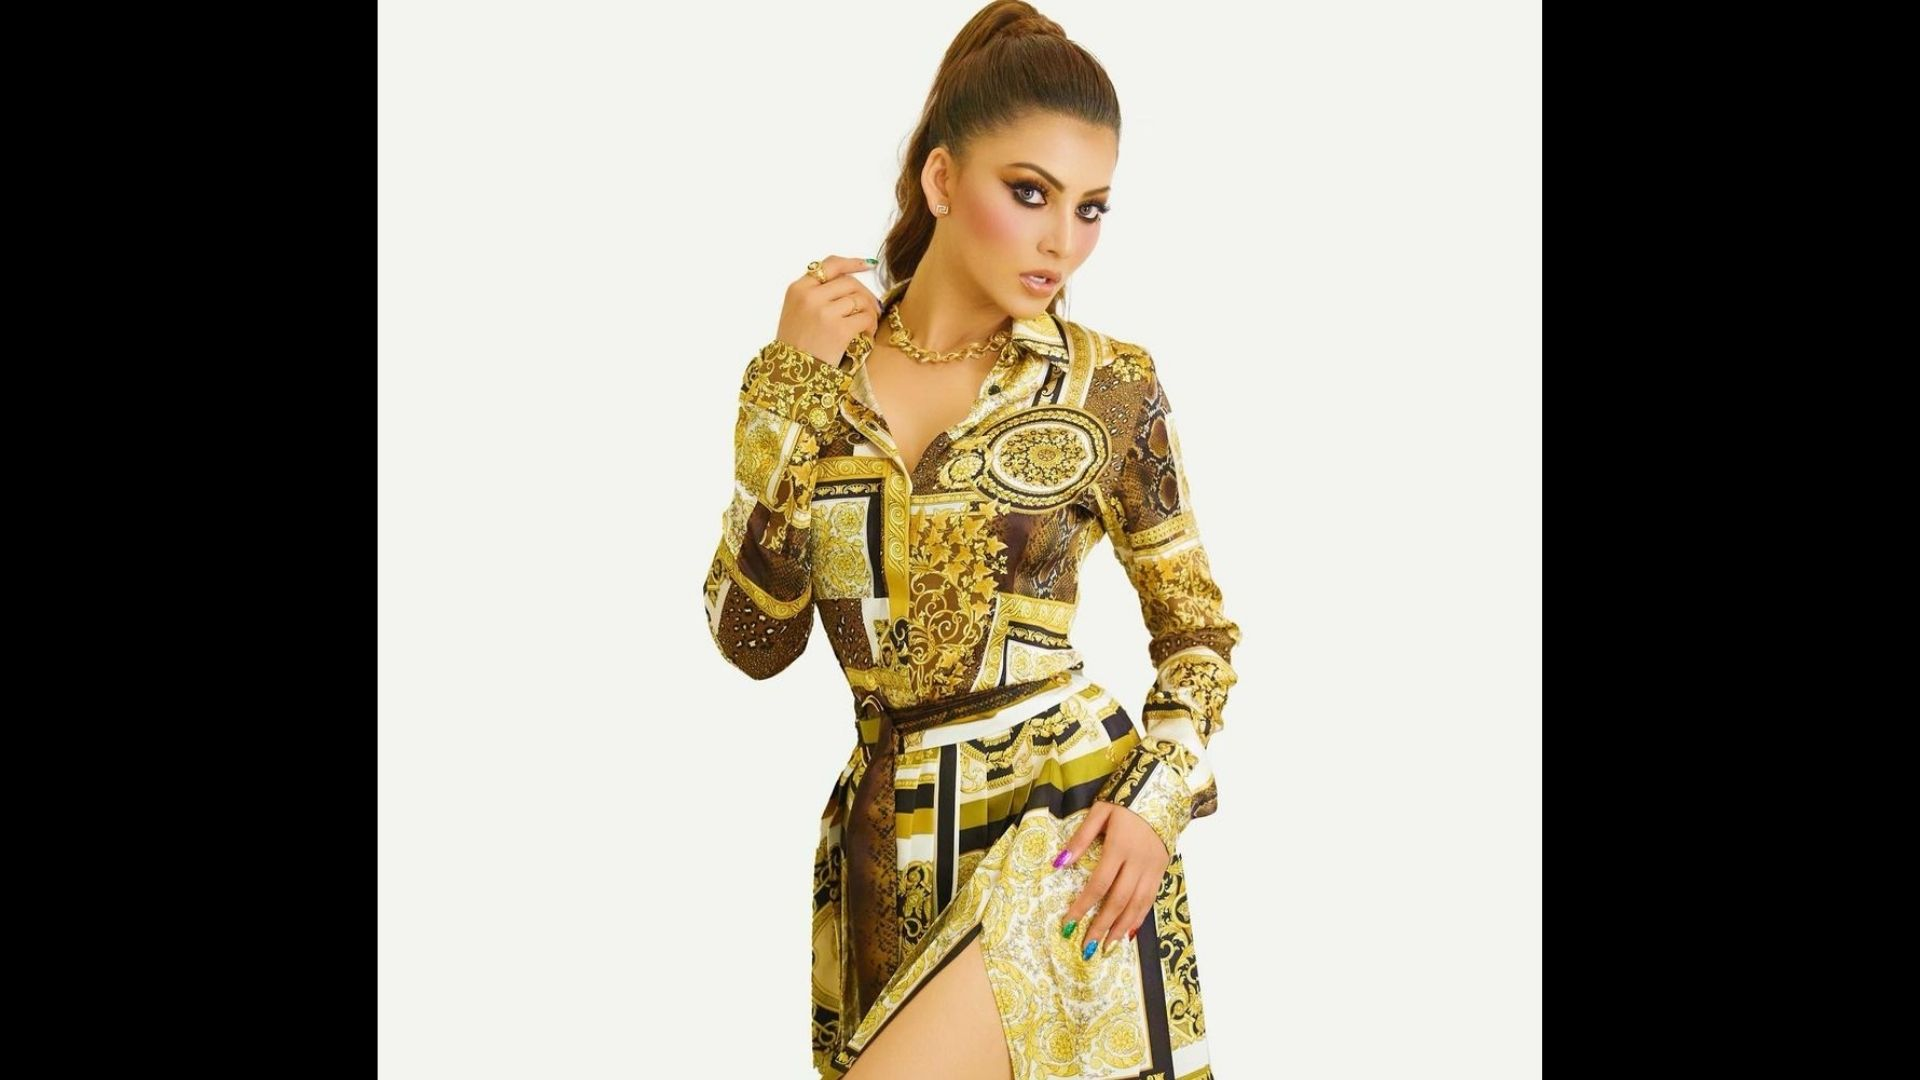 India Vs Pakistan T20 World Cup 2021: Urvashi Rautela Book Herself A Golden Ticket Ahead Of The Crucial Match